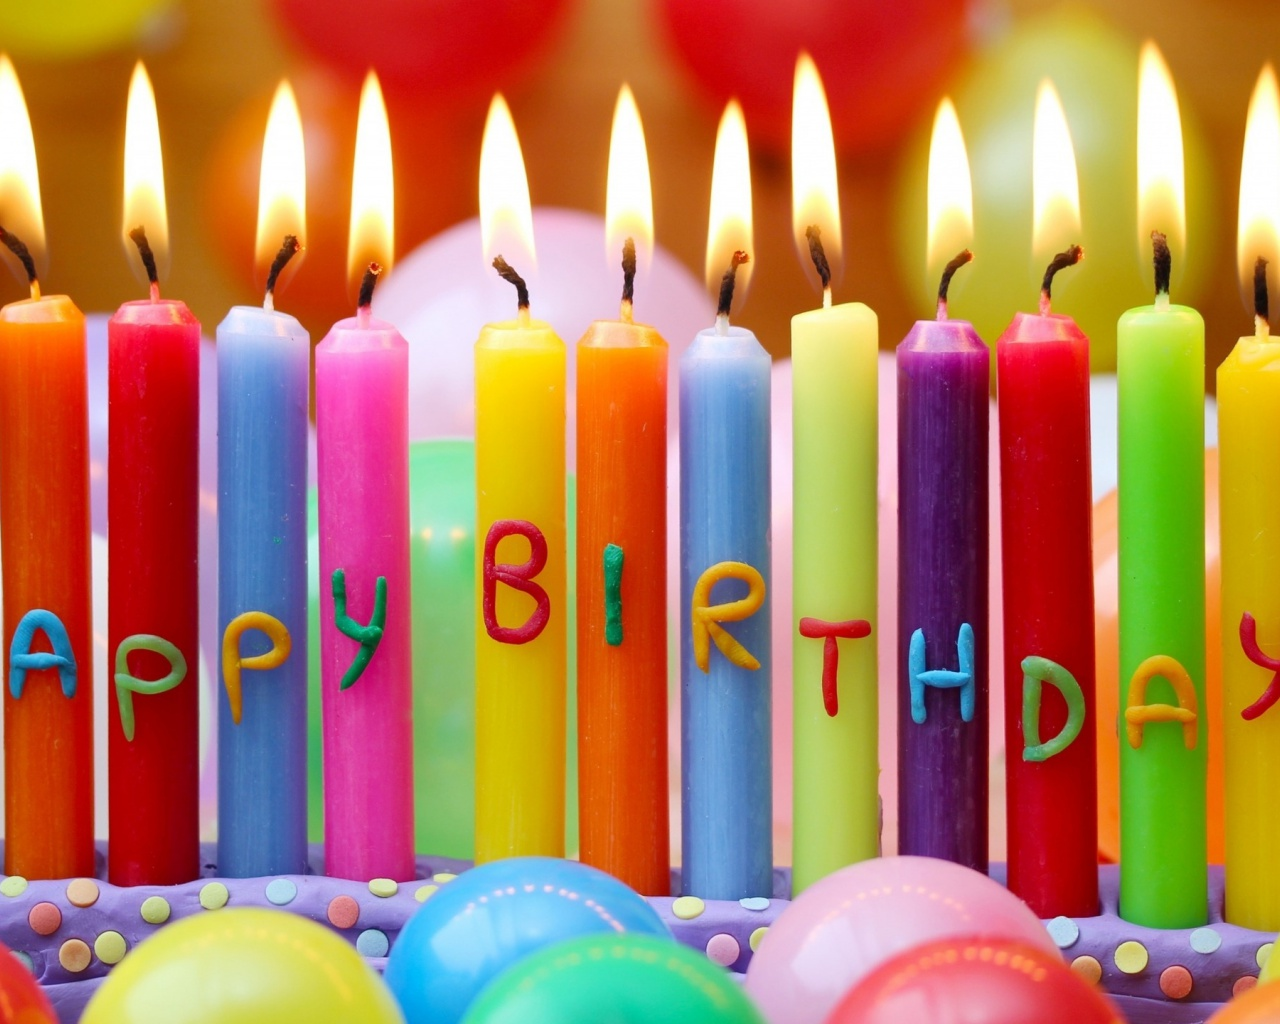 happy birthday wishes hd images free download ; 36017352-happy-birthday-image